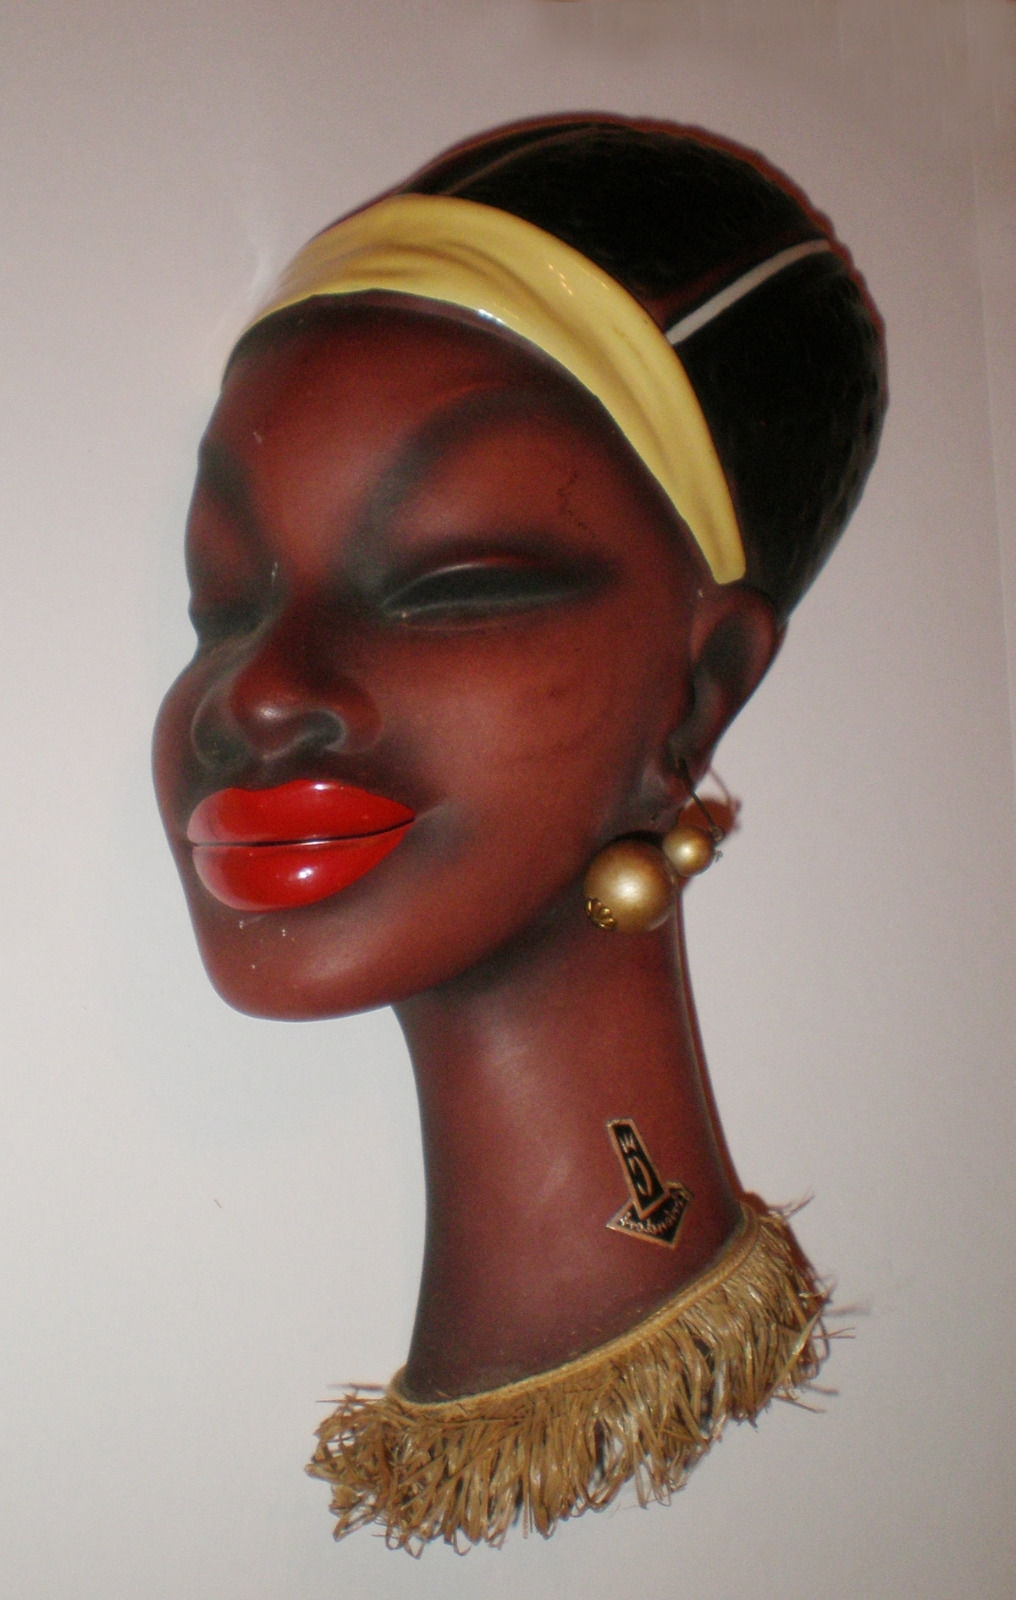 Cortendorf African Lady Head Mask Wall Art Deco Vintage 1950s, Nr Throughout Well Liked Mannequin Wall Art (View 10 of 15)